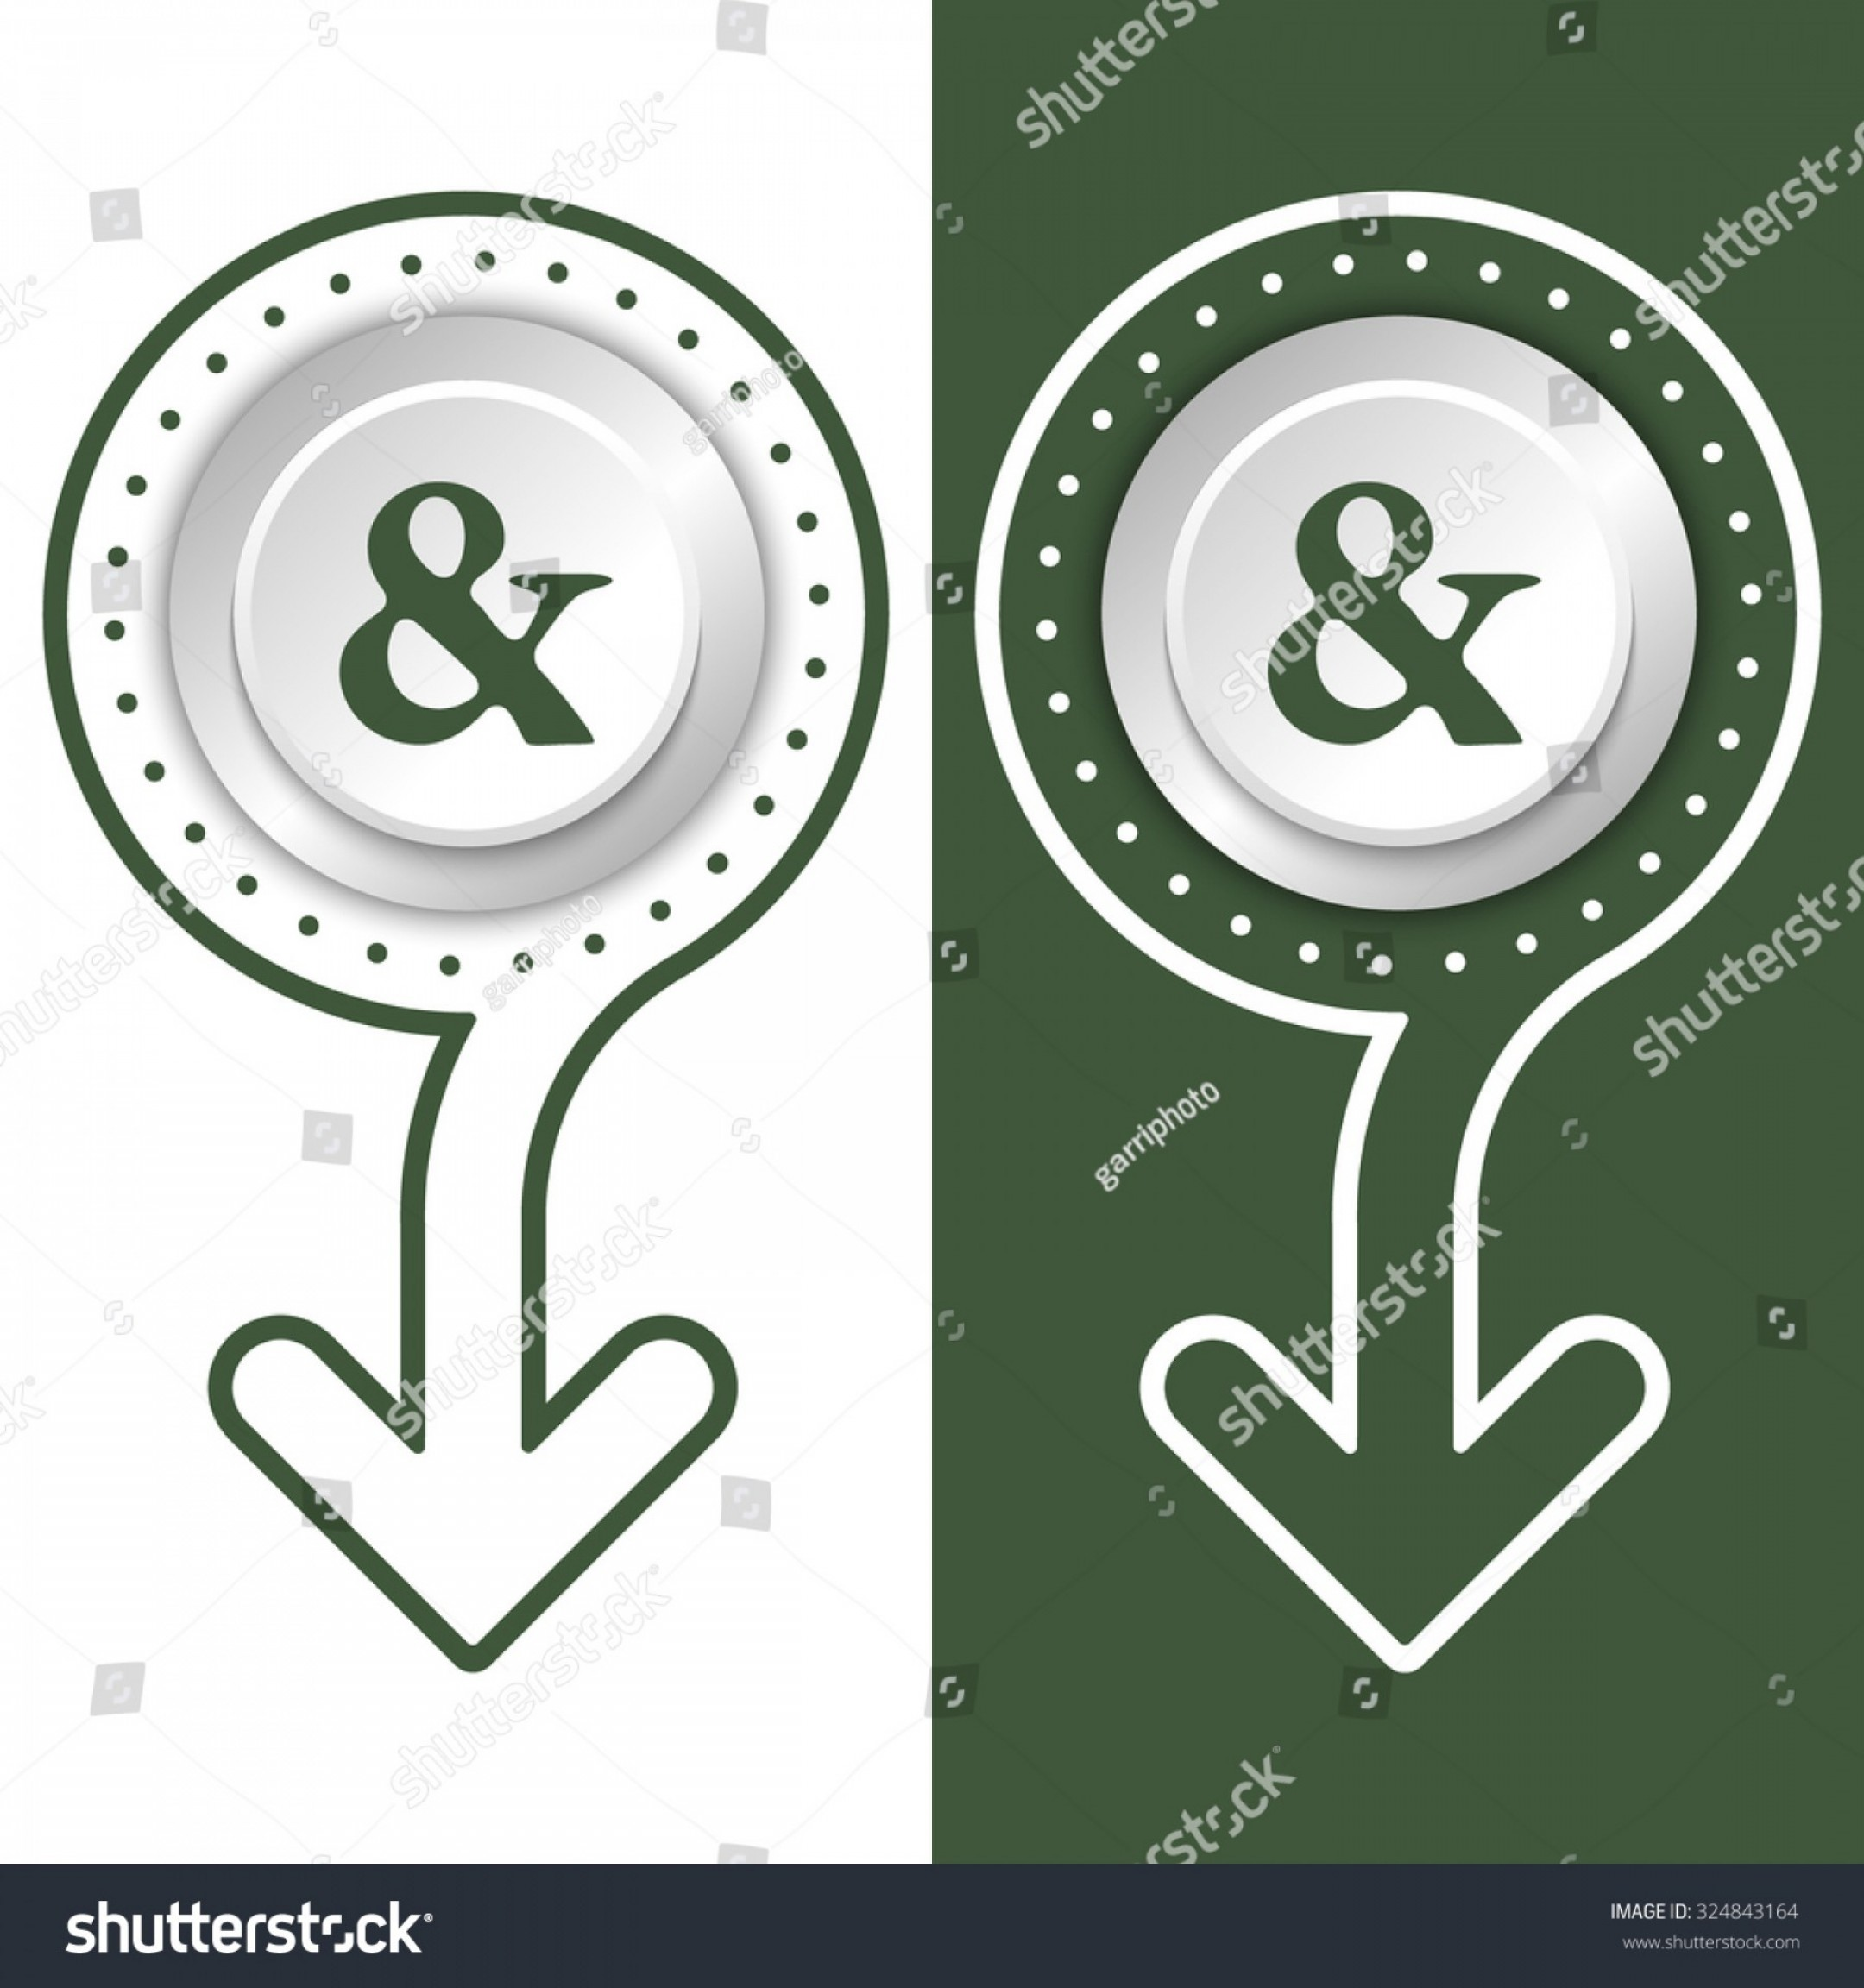 Ampersand Symbol Vector: Stock Vector Simple Flat Abstract Arrow And Ampersand Symbol